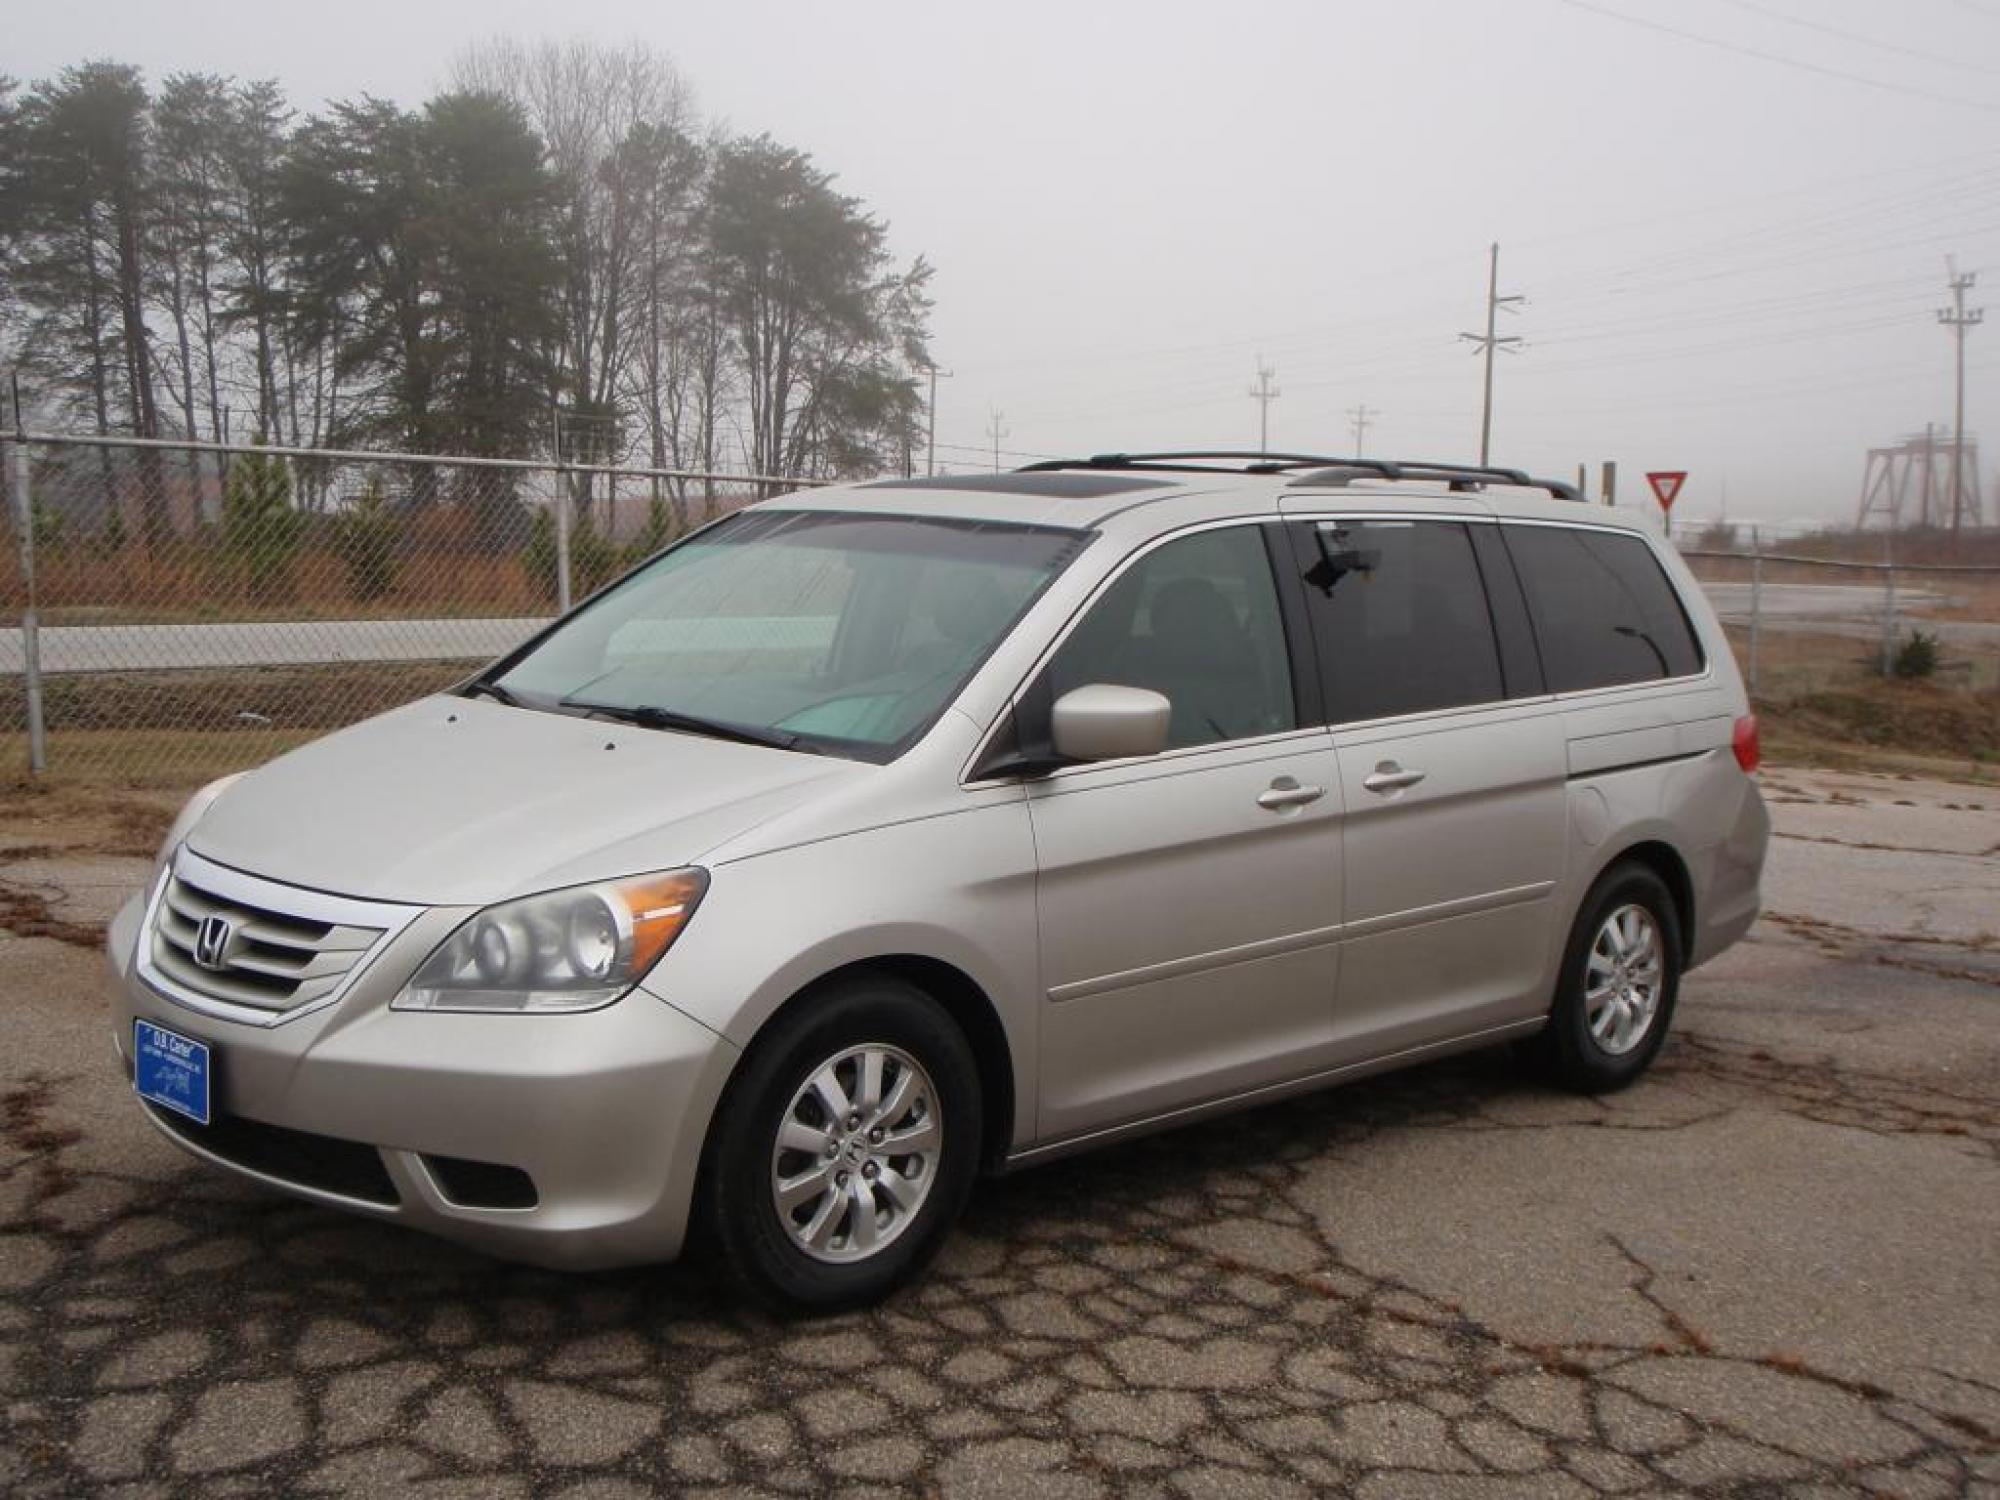 2009 Honda ODESSY EX-L DVD 4 Door Van GRAY GRAY LEATHER 4-WHEEL ANTI-LOCK DISC BRAKESPWR GLASS